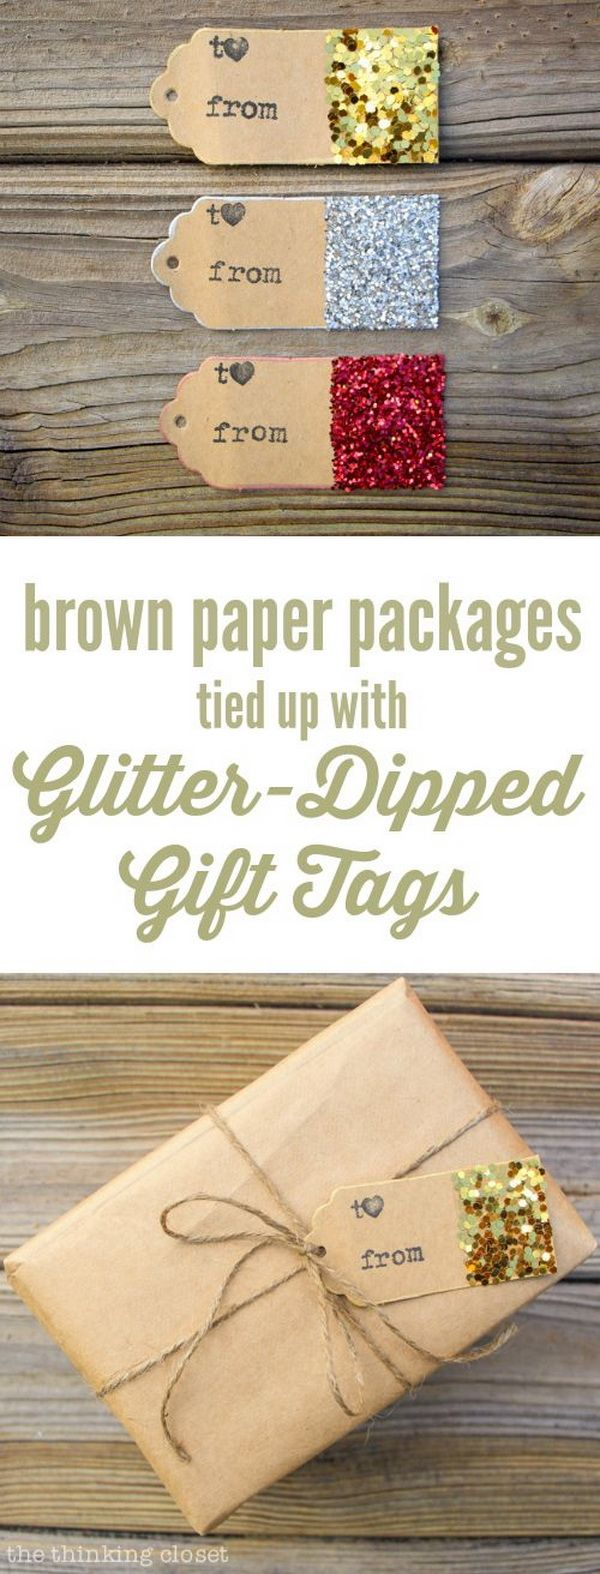 Glitter-Dipped Gift Tags with Brown Paper Package.